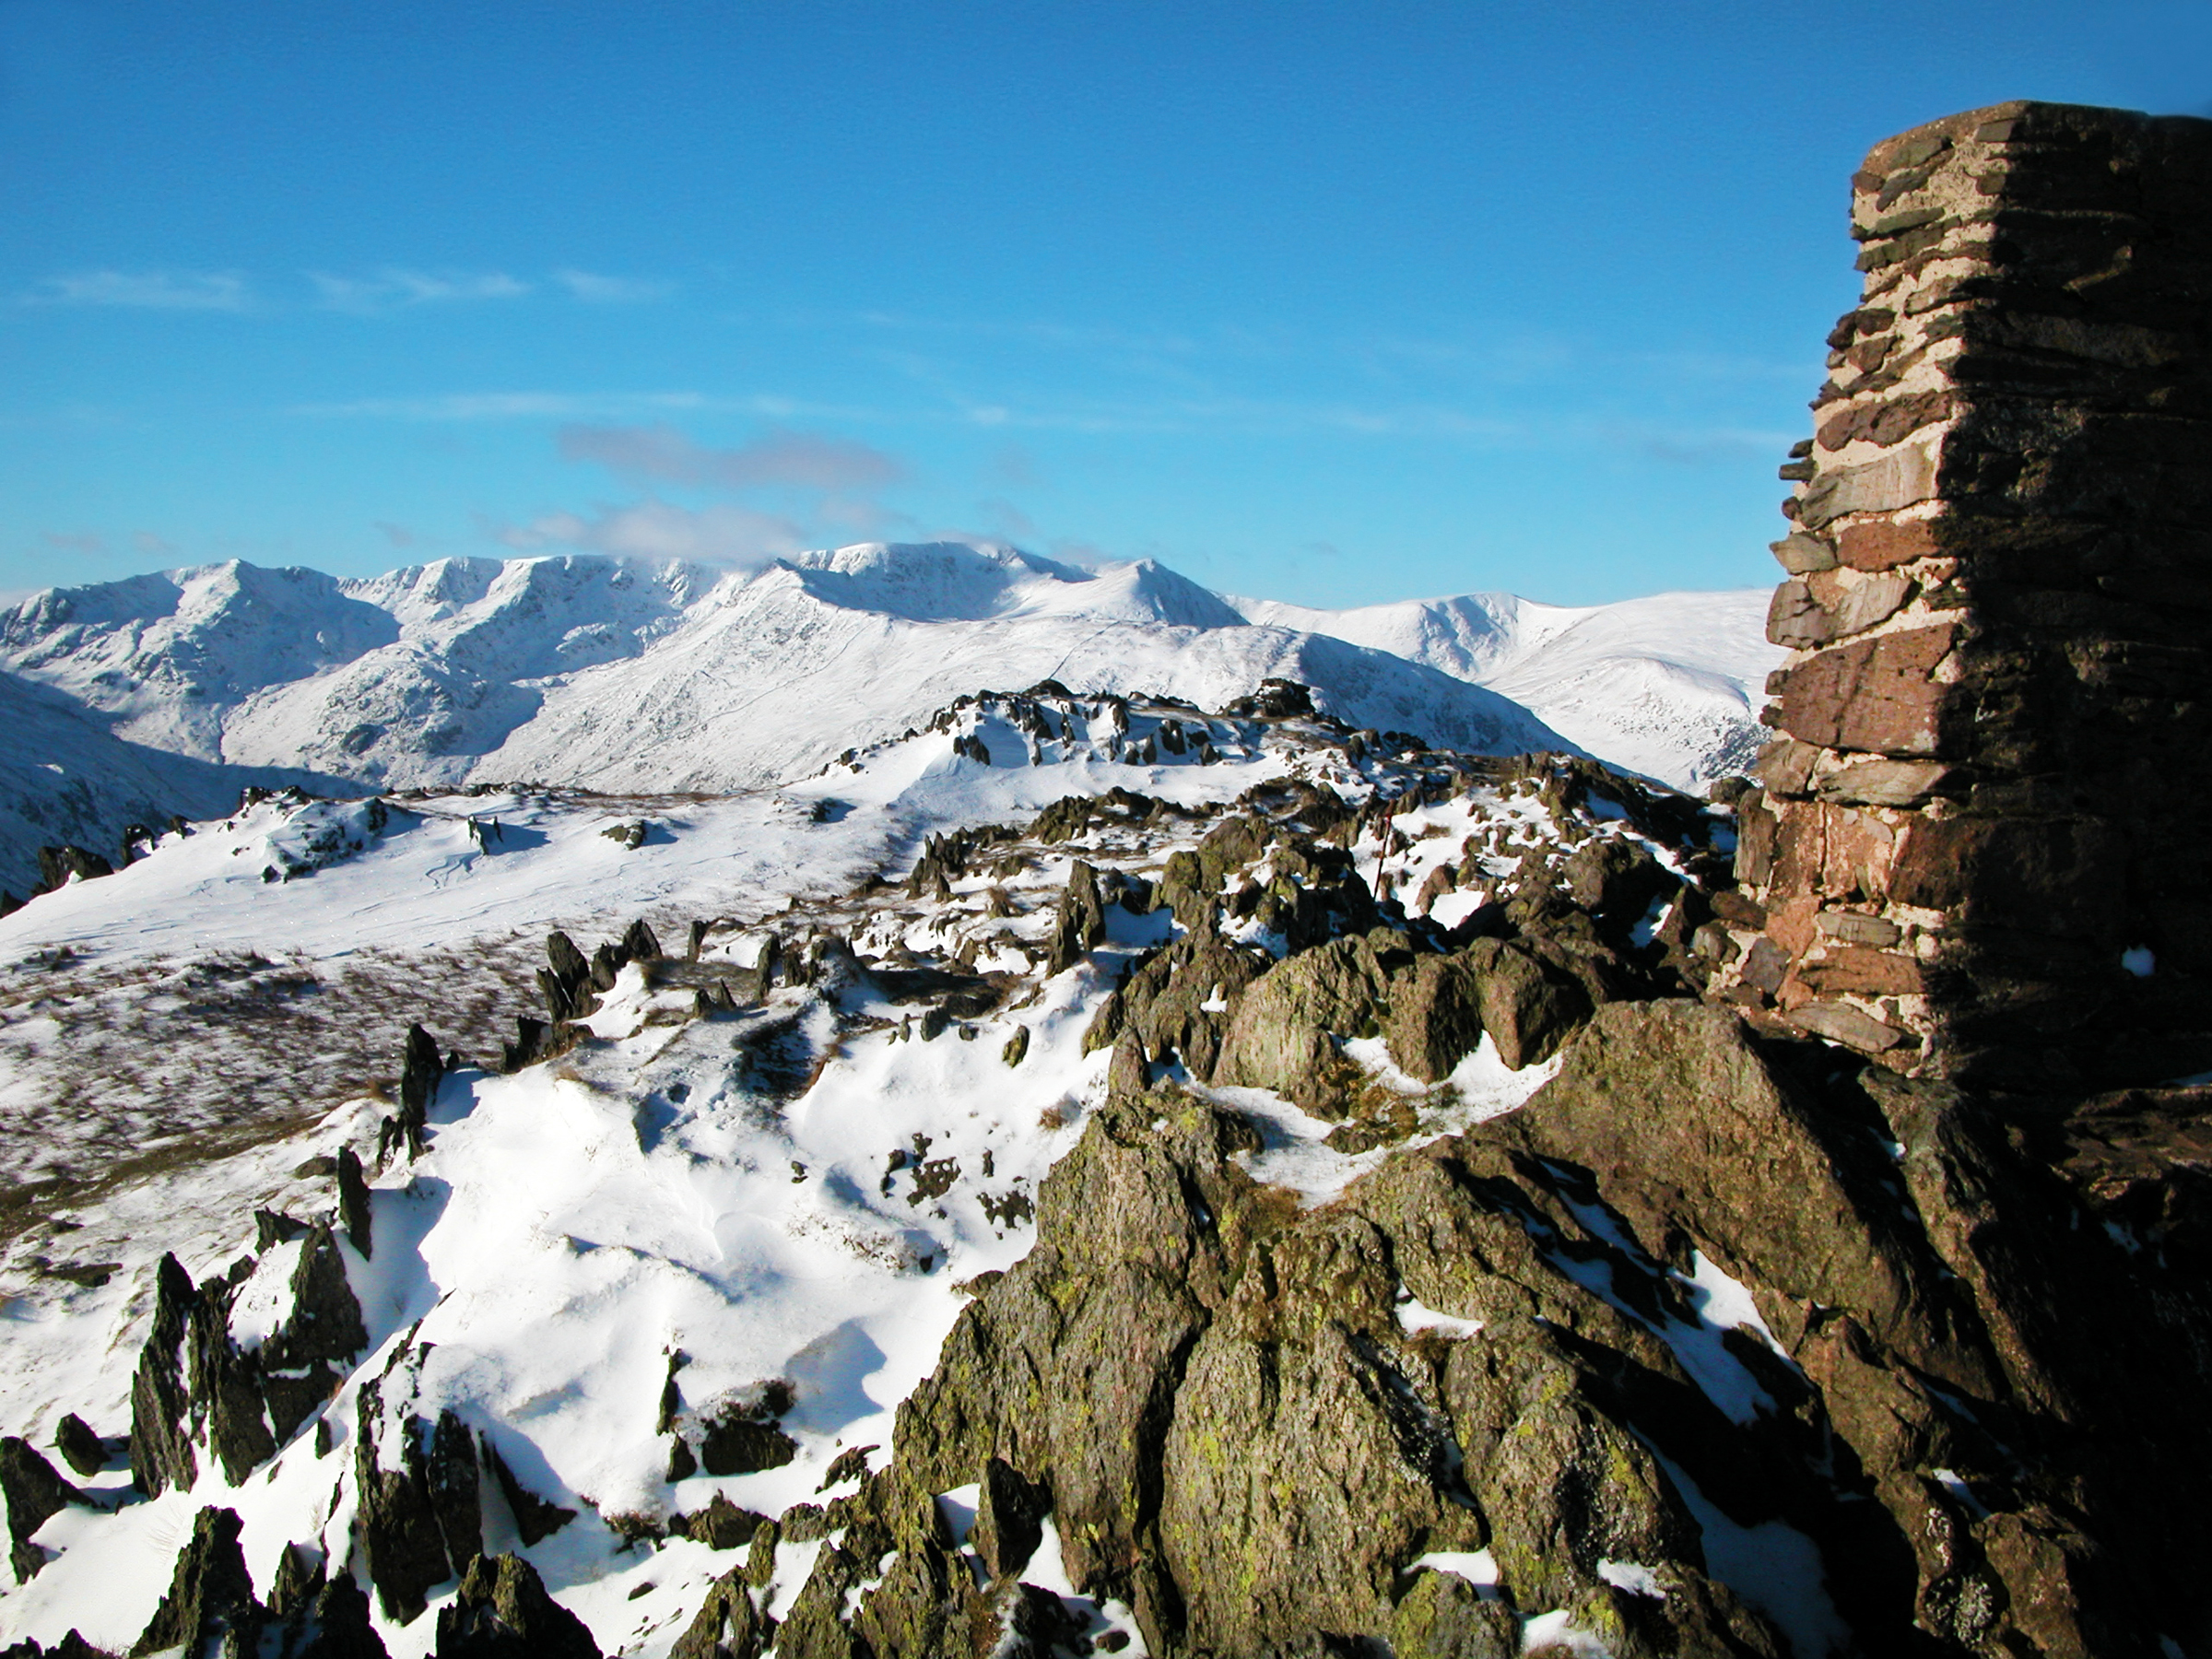 Helvelyn from Place Fell